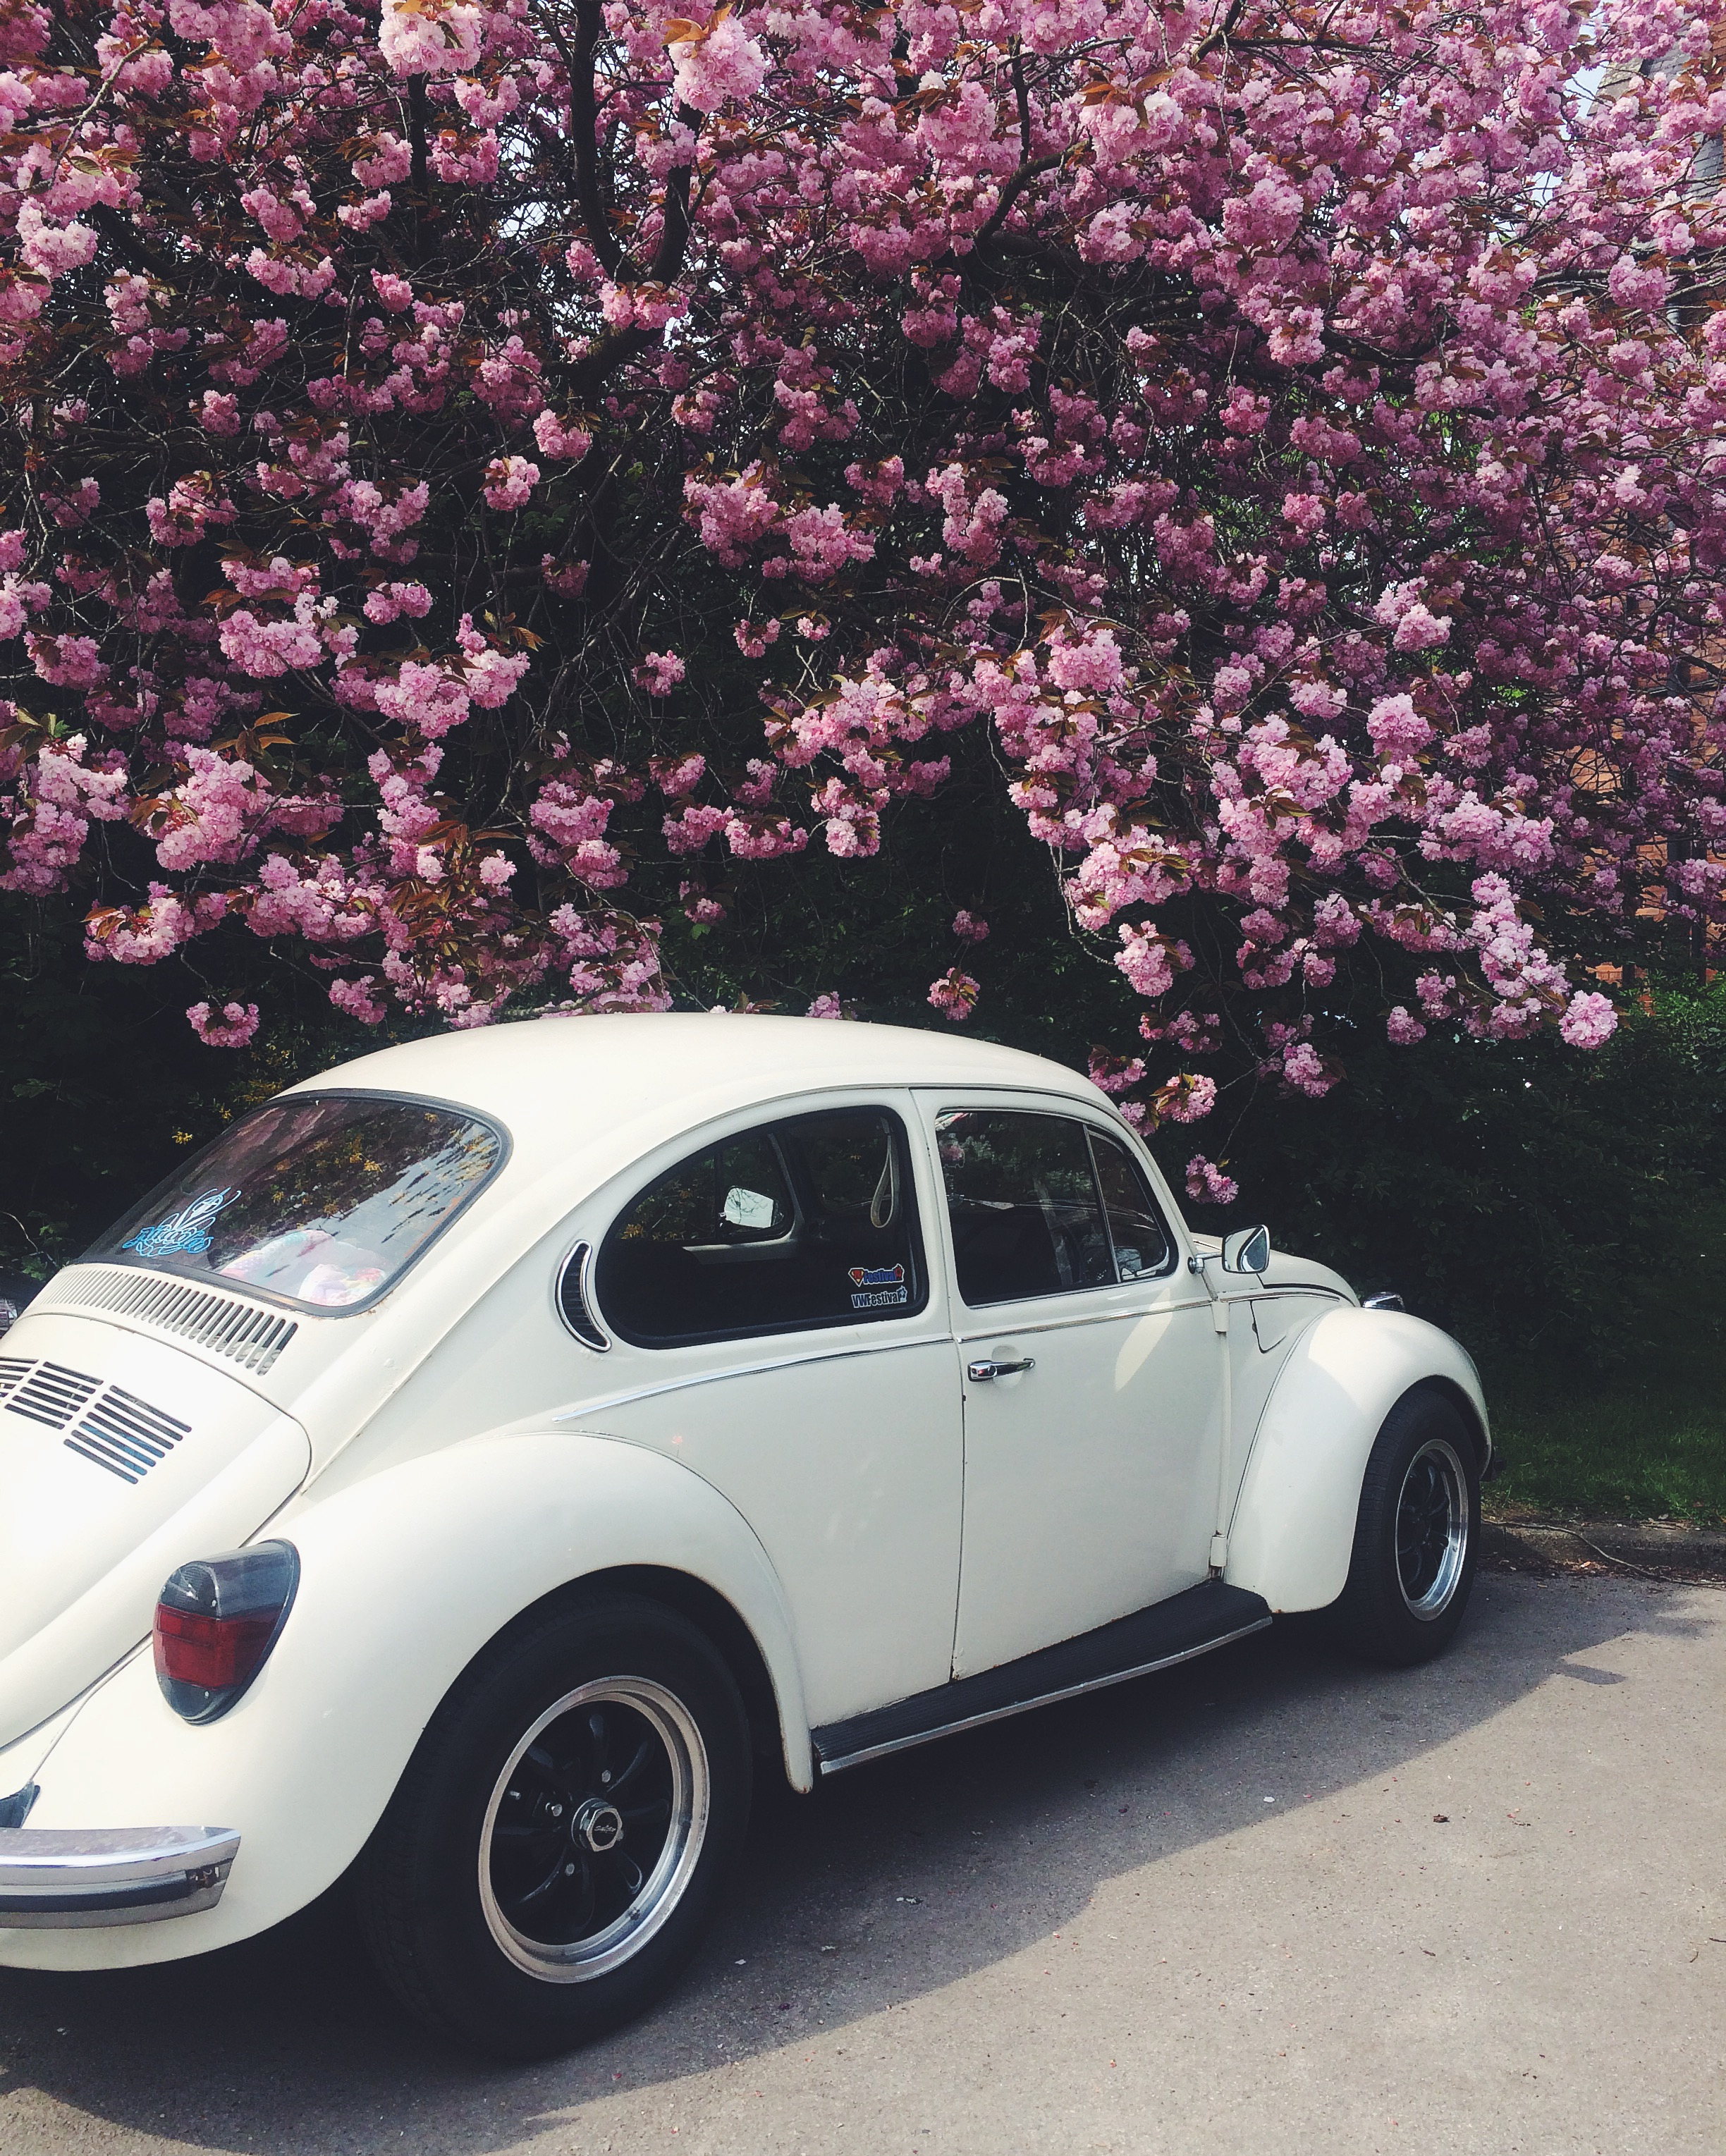 Vintage Beetle under blossom tree Spring